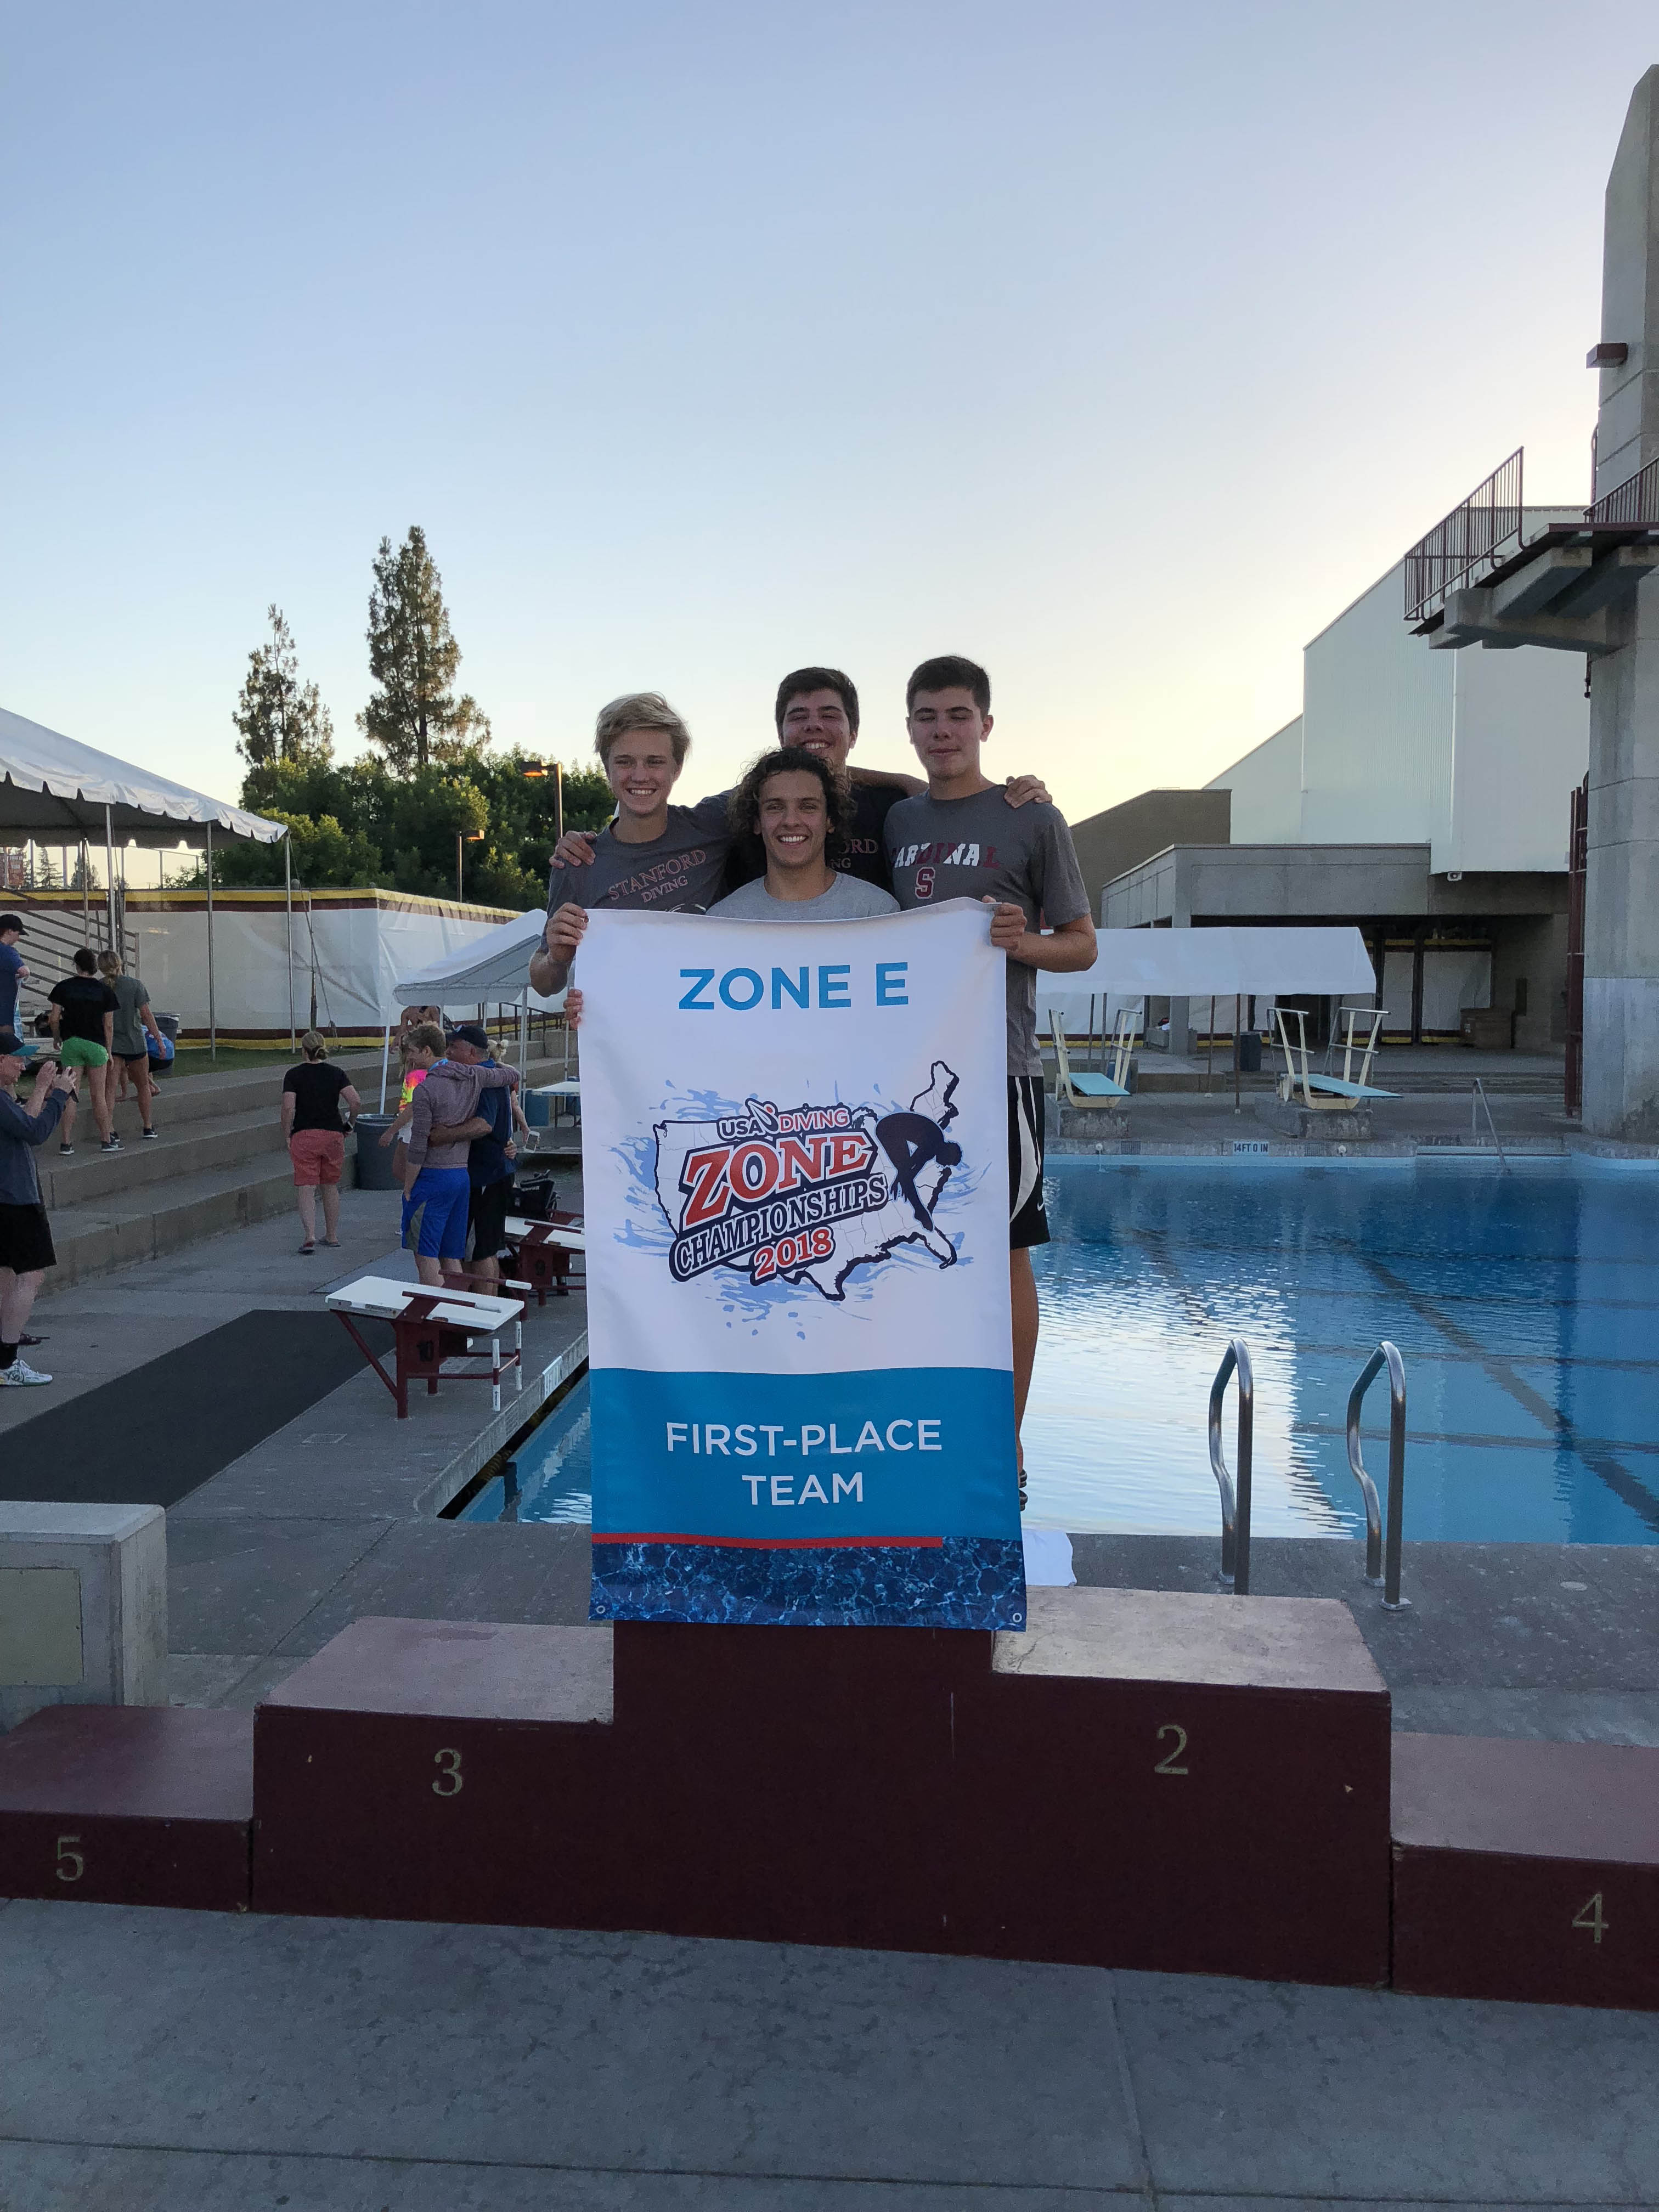 2018 USA Diving Zone E - Stanford Diving Site